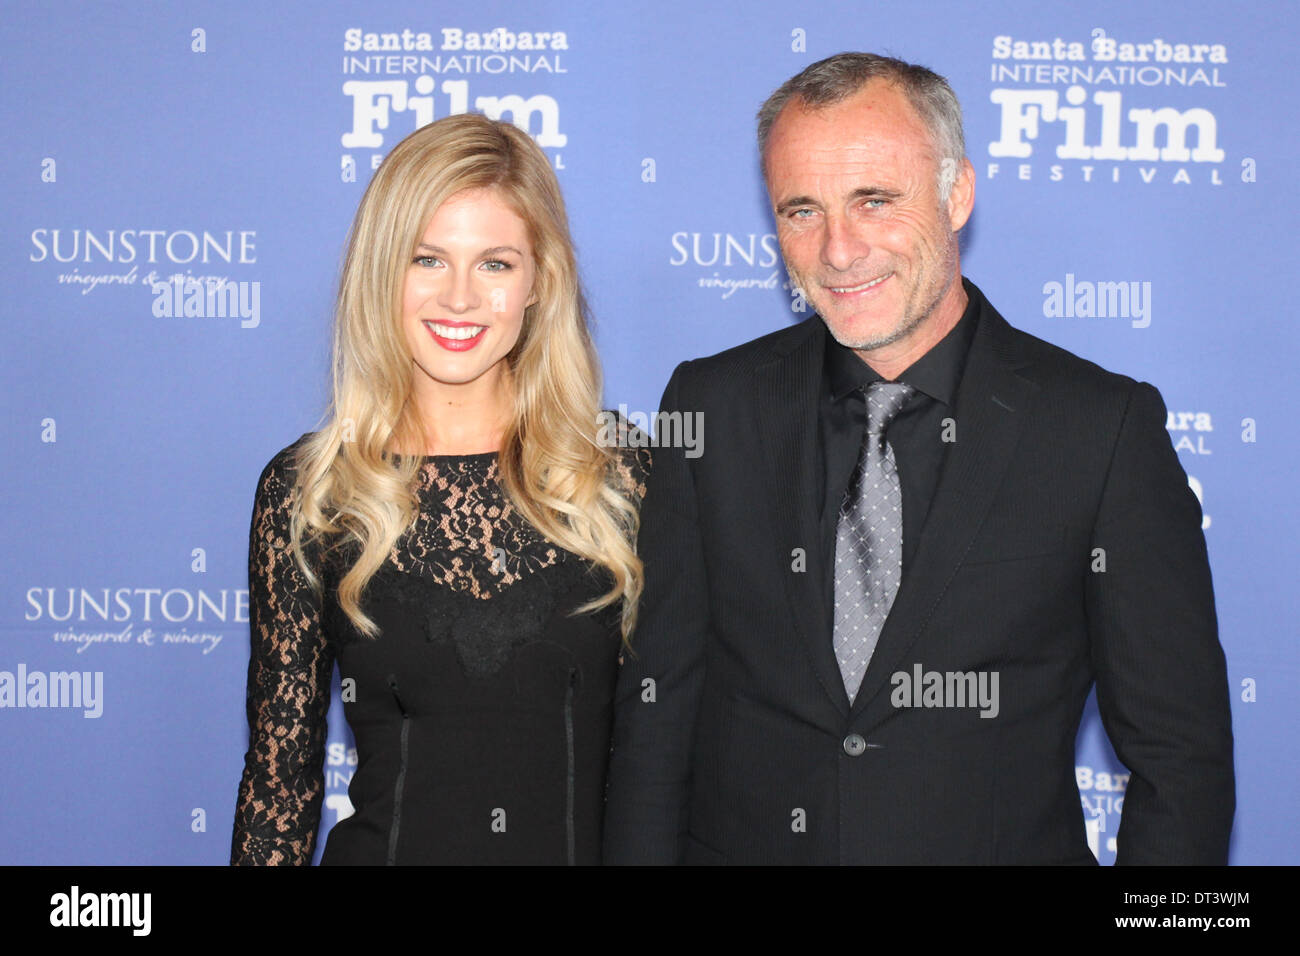 Sons anarchy stock photos sons anarchy stock images alamy caitlin manley and timothy v murphy sons of anarchy walk the red carpet kristyandbryce Choice Image